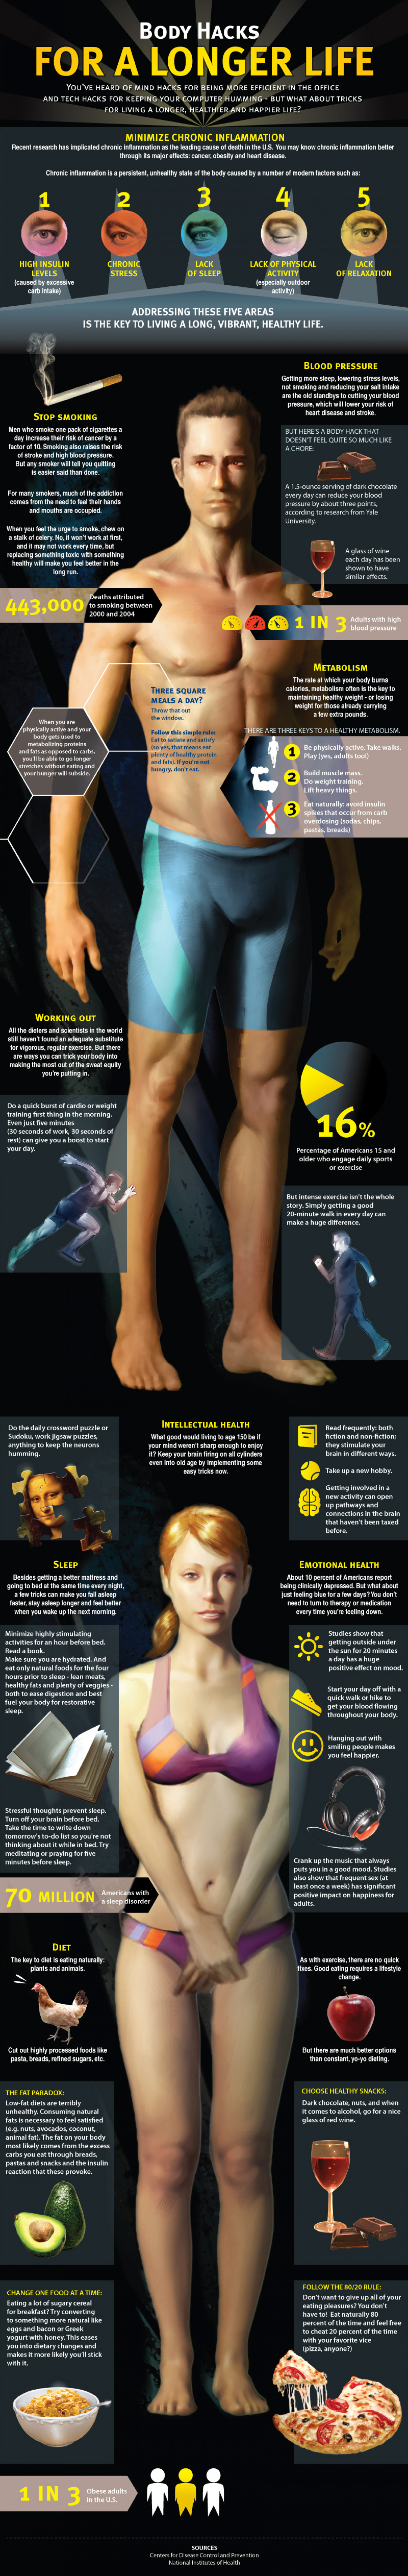 Body Hacks For A Longer Life Infographic